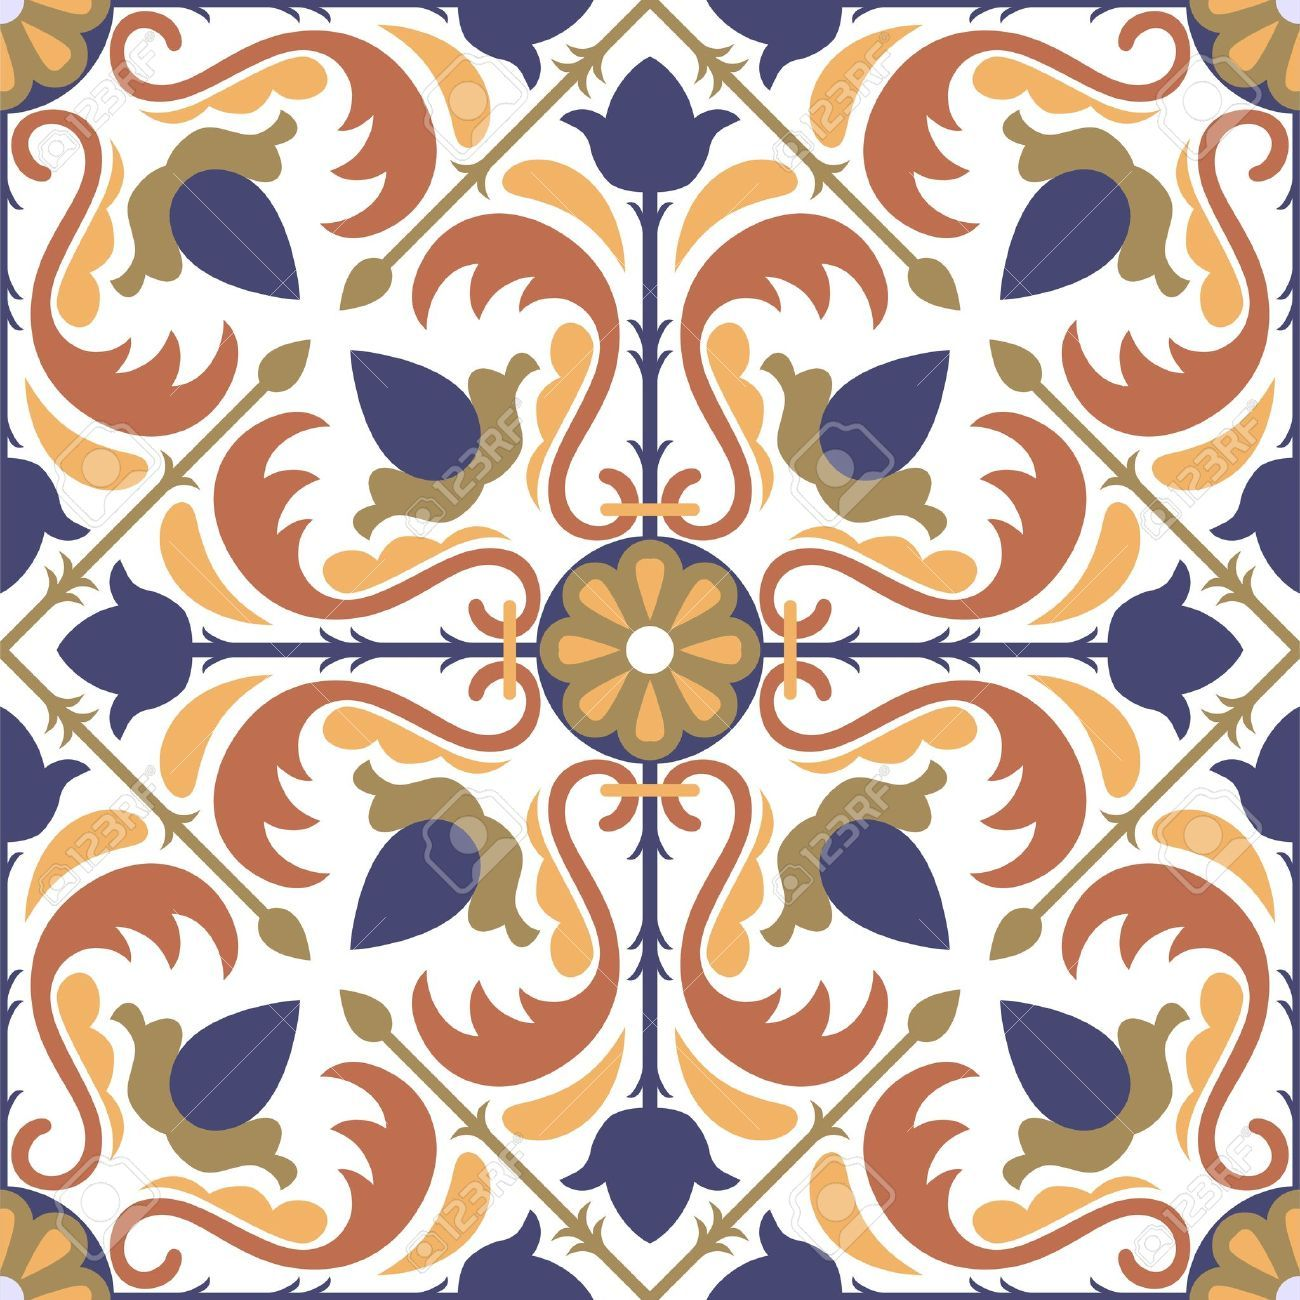 Vector of moroccan tile seamless pattern tile for design tile - Illustration Of Colorful Arabic Style Tiles Seamless Pattern Vector Art Clipart And Stock Vectors